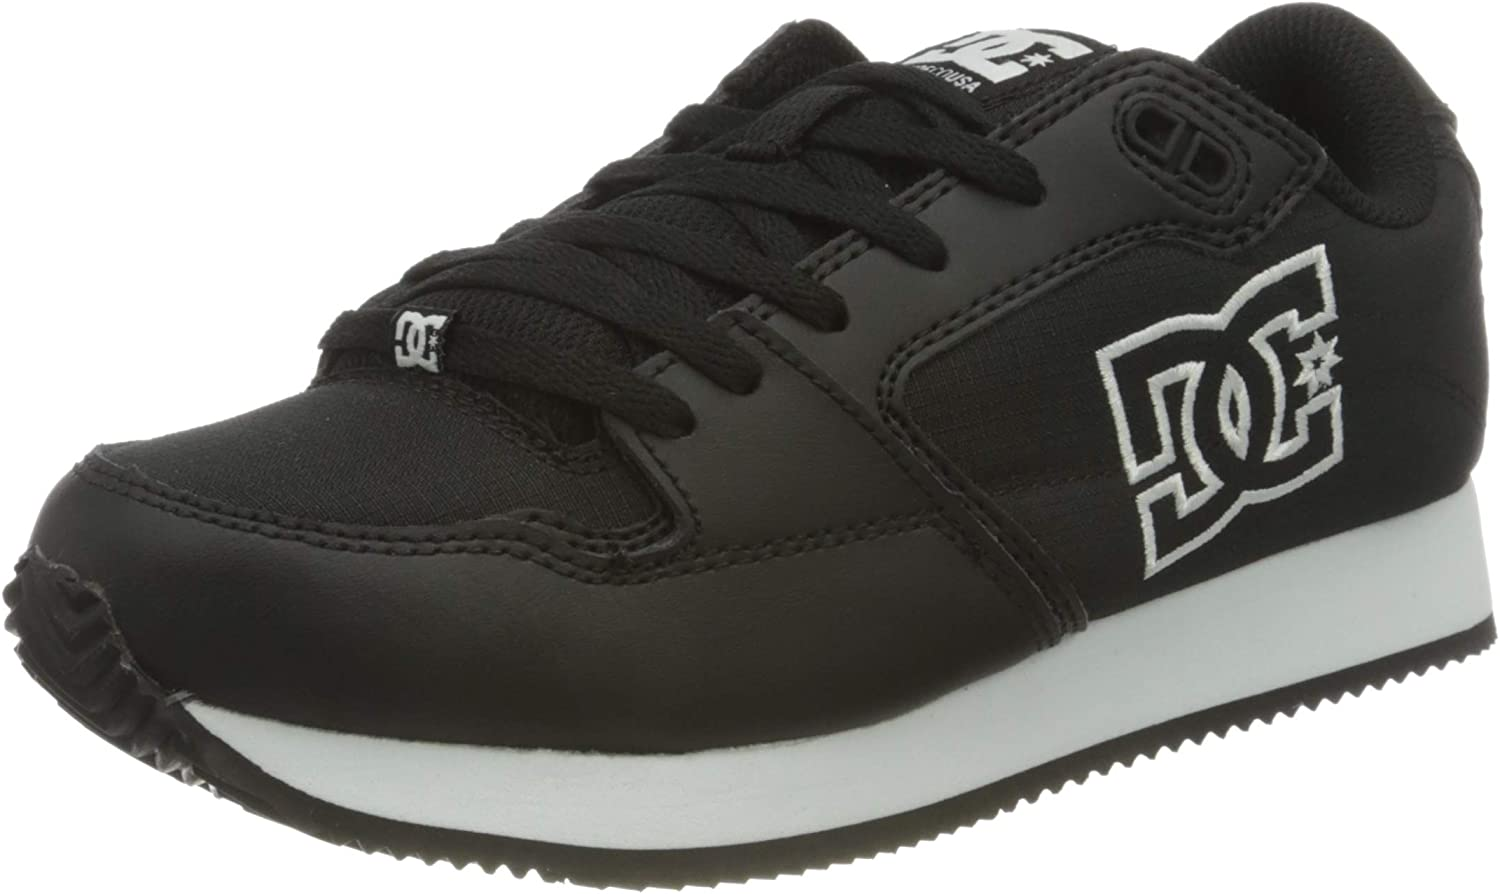 Max 85% OFF DC Ranking TOP9 Shoes Women's Alias Sneaker